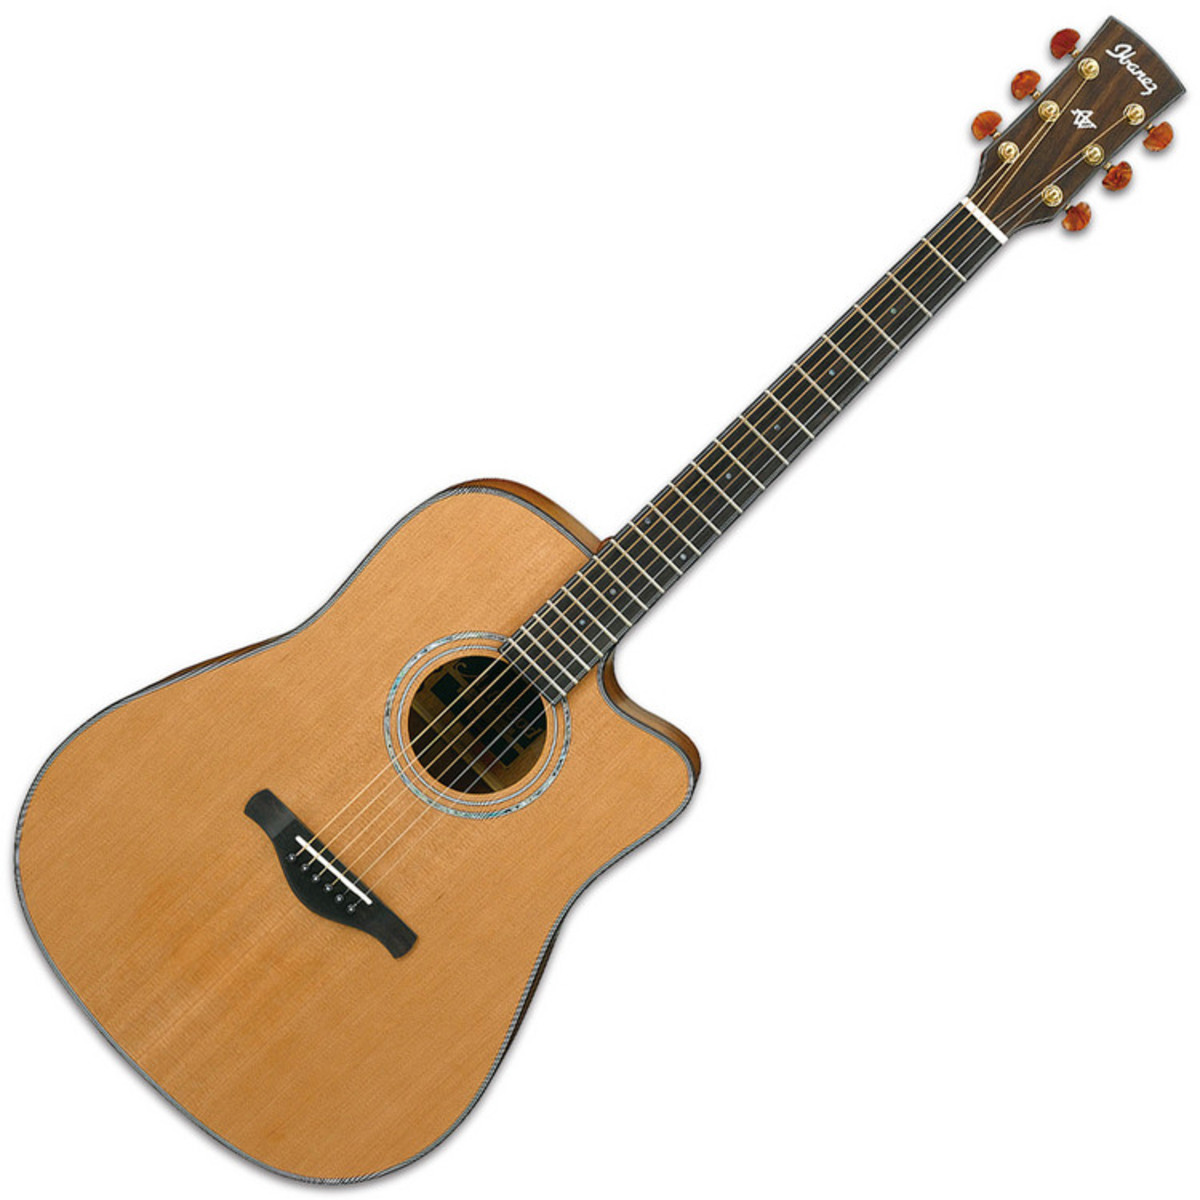 ibanez aw3050ce artwood series guitare electro acoustique. Black Bedroom Furniture Sets. Home Design Ideas